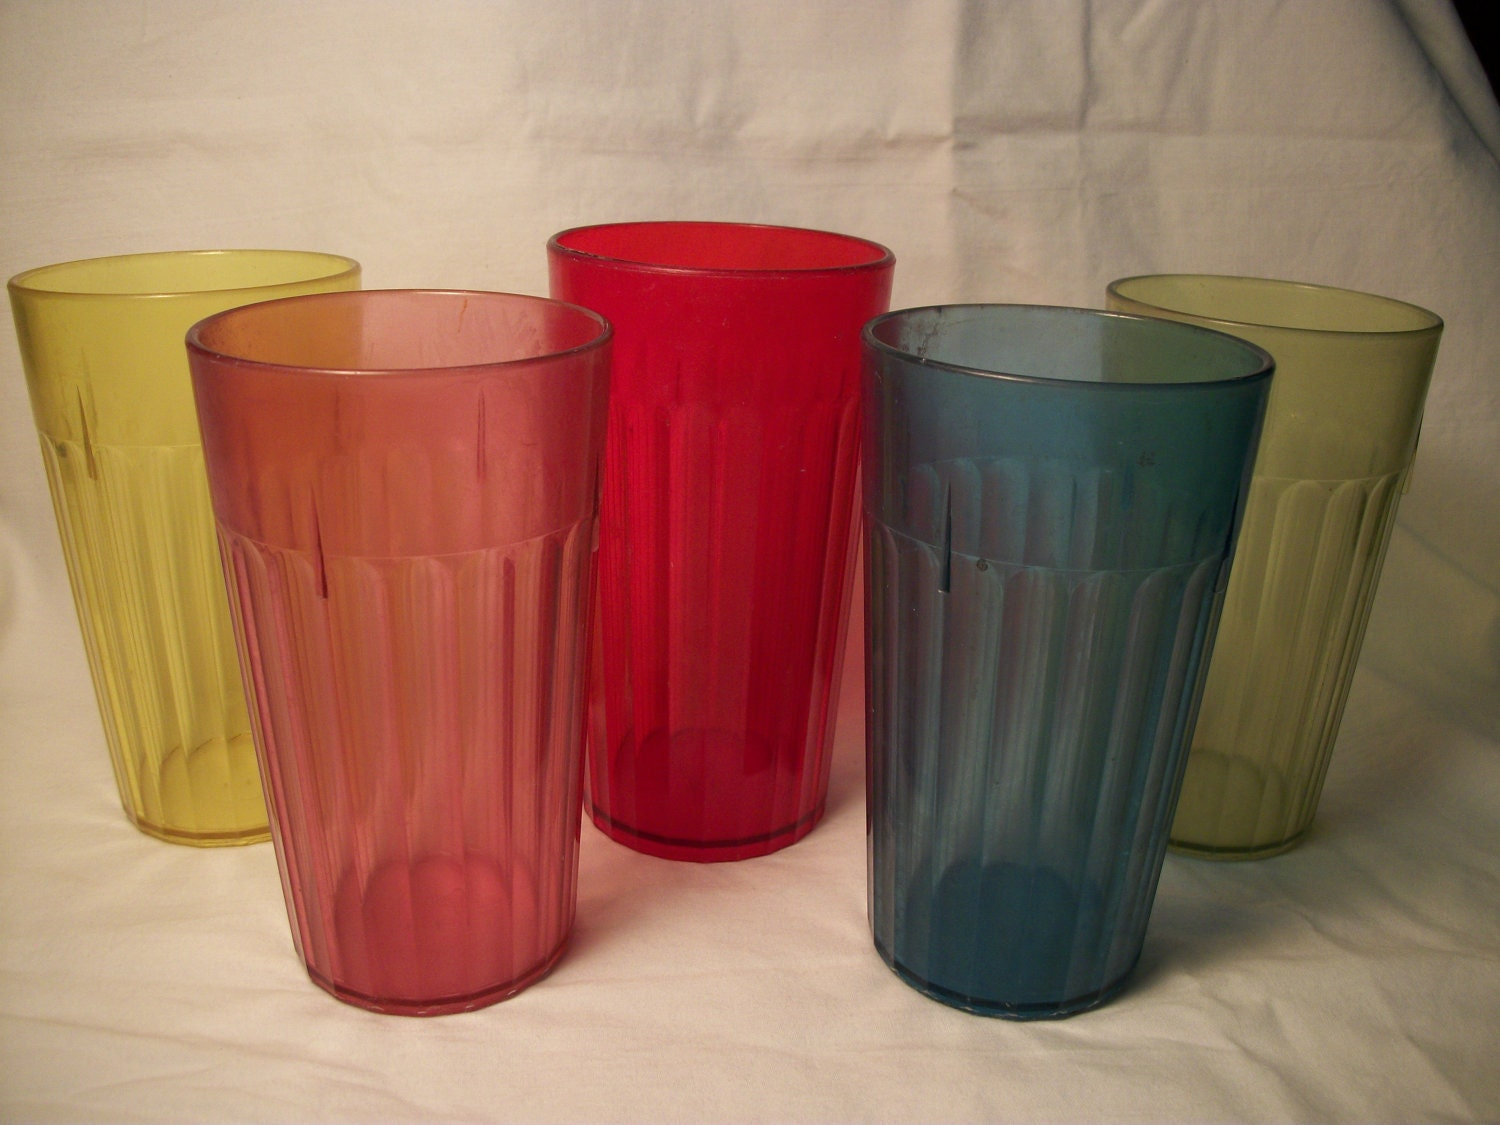 how to clean plastic drinking glasses